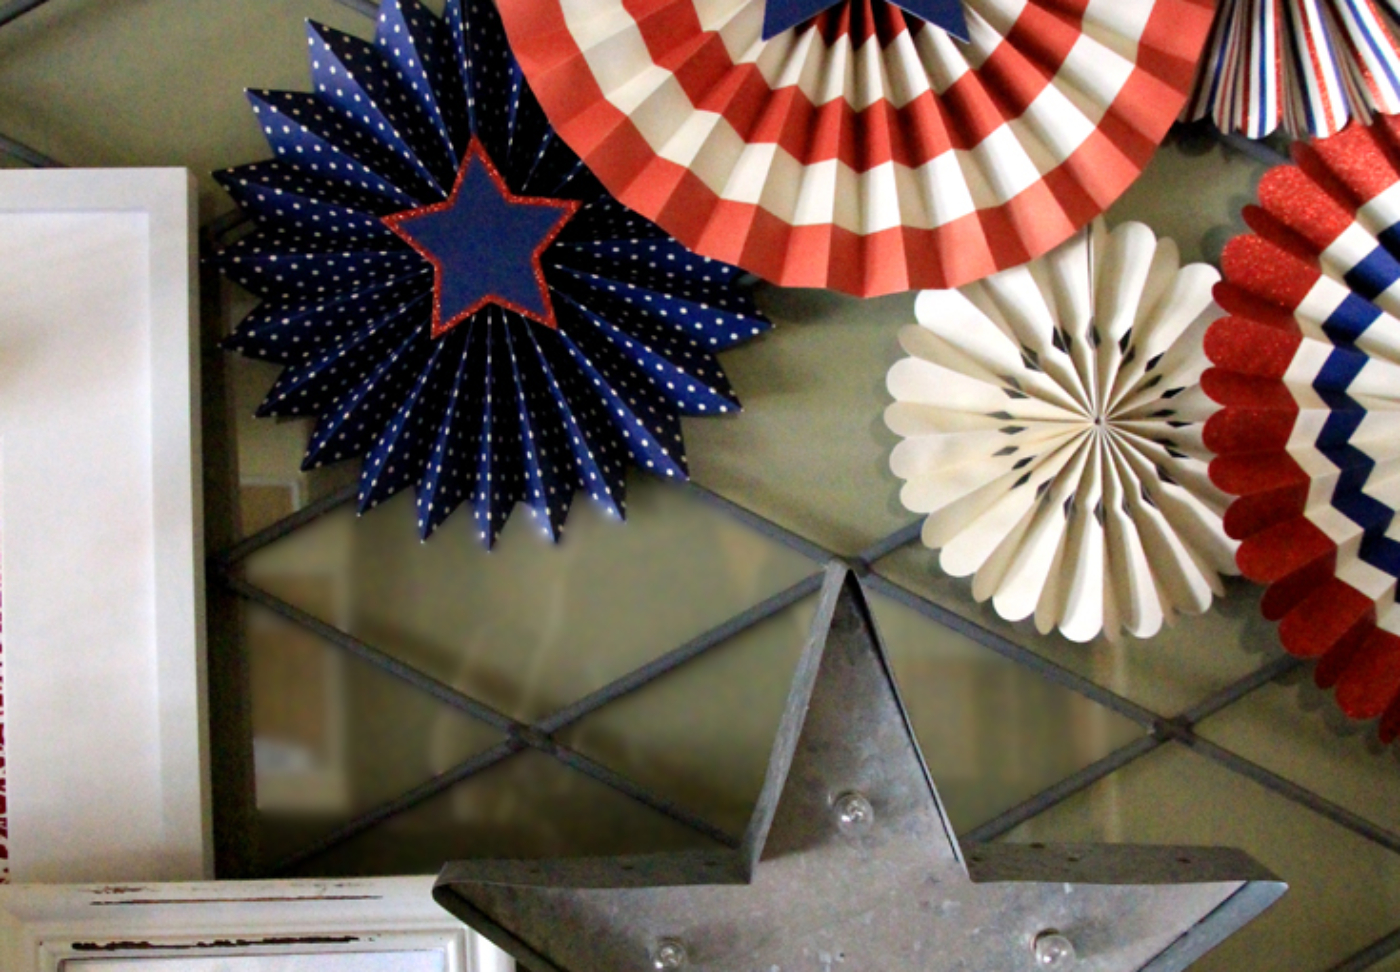 Holiday Decor Double Duty   Halfpint Design - This patriotic mantel is great for a super hero party or nautical party. Red, white, and blue are perfect party colors to use before and after 4th of July for a Wonder Woman or Captain America party (stars included) or Superman and Spiderman. Double Duty Fourth of July decor.